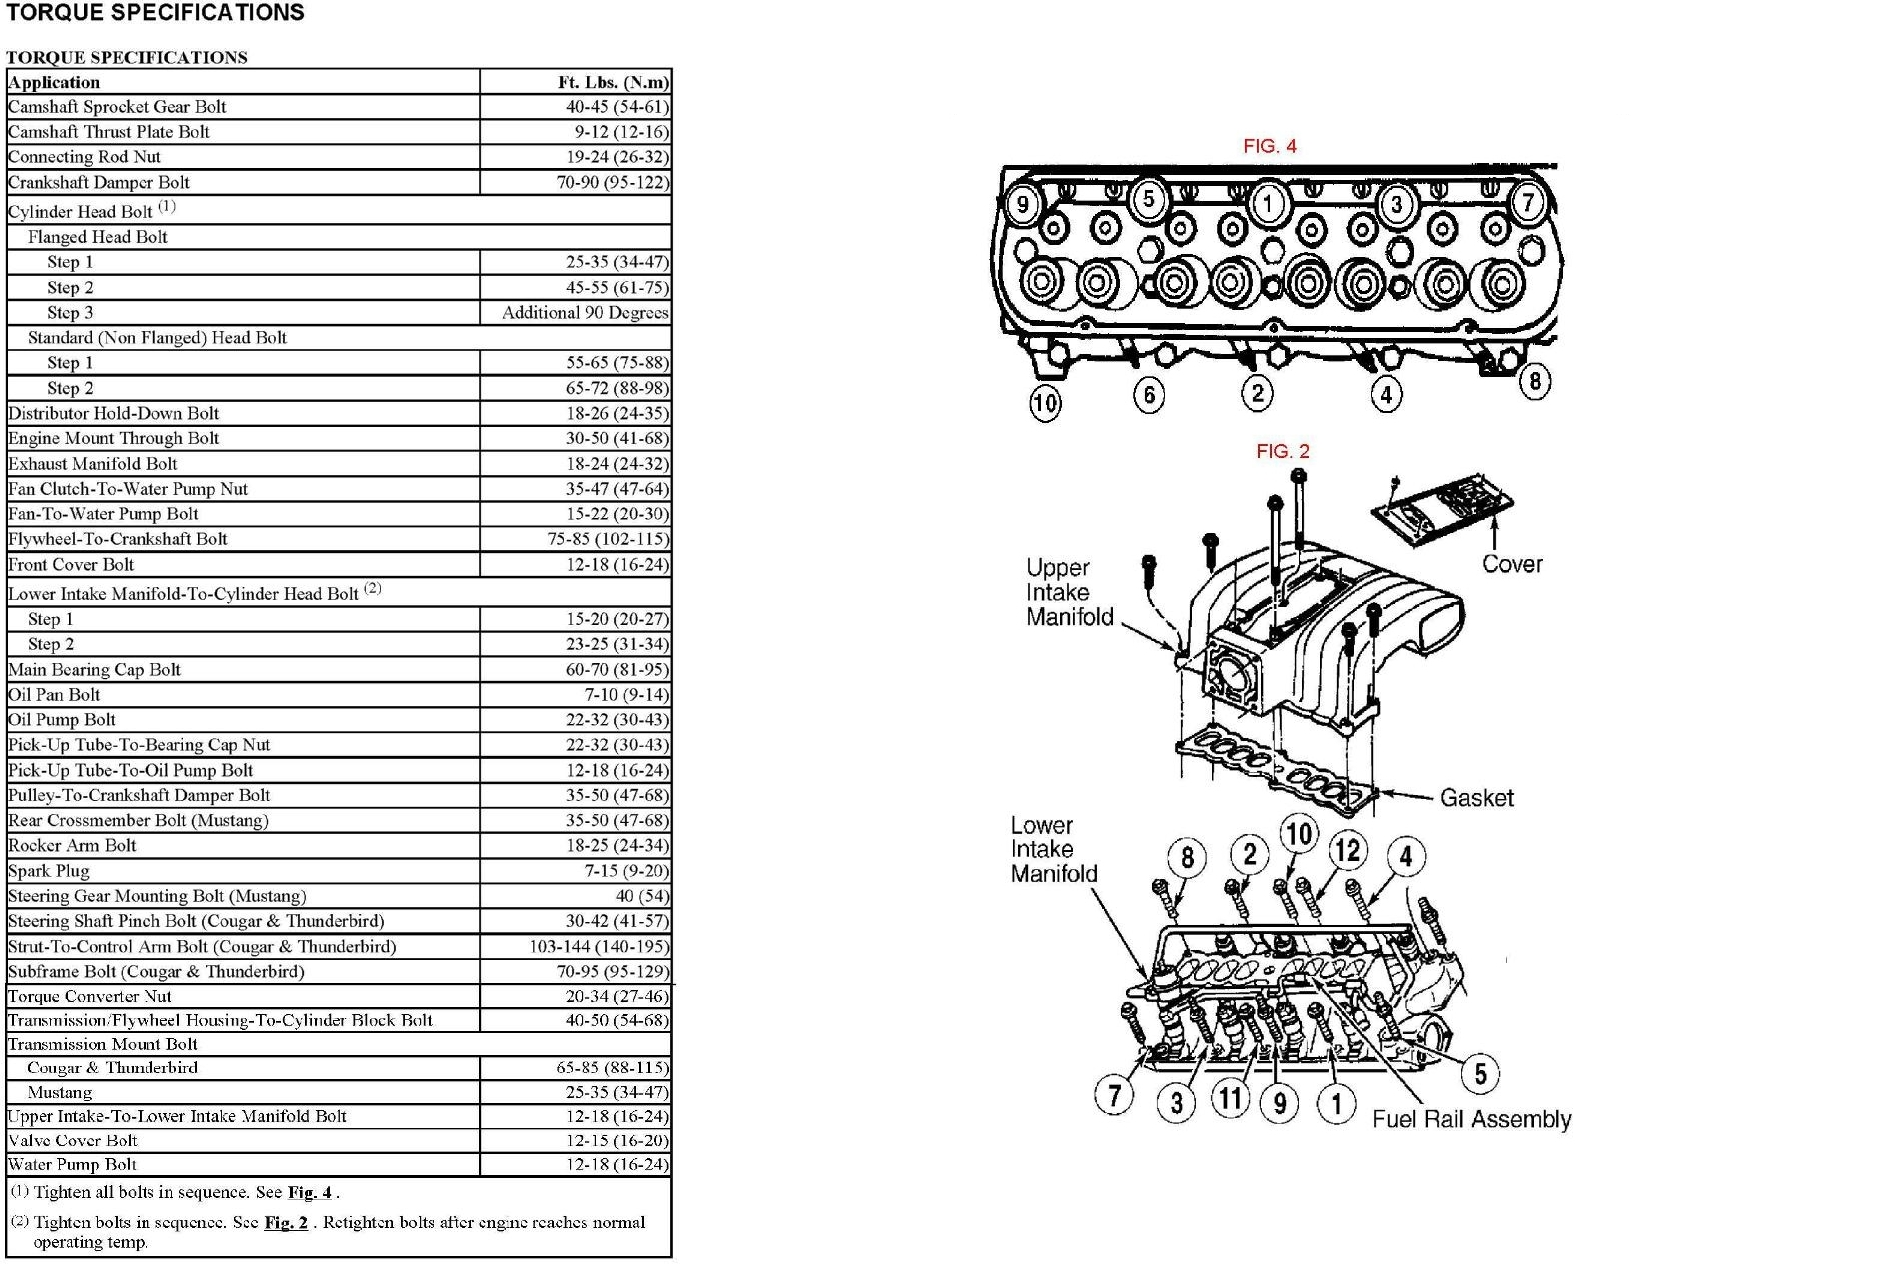 Foxbody Mustang Info Specs on 1967 ford mustang fuse box diagram